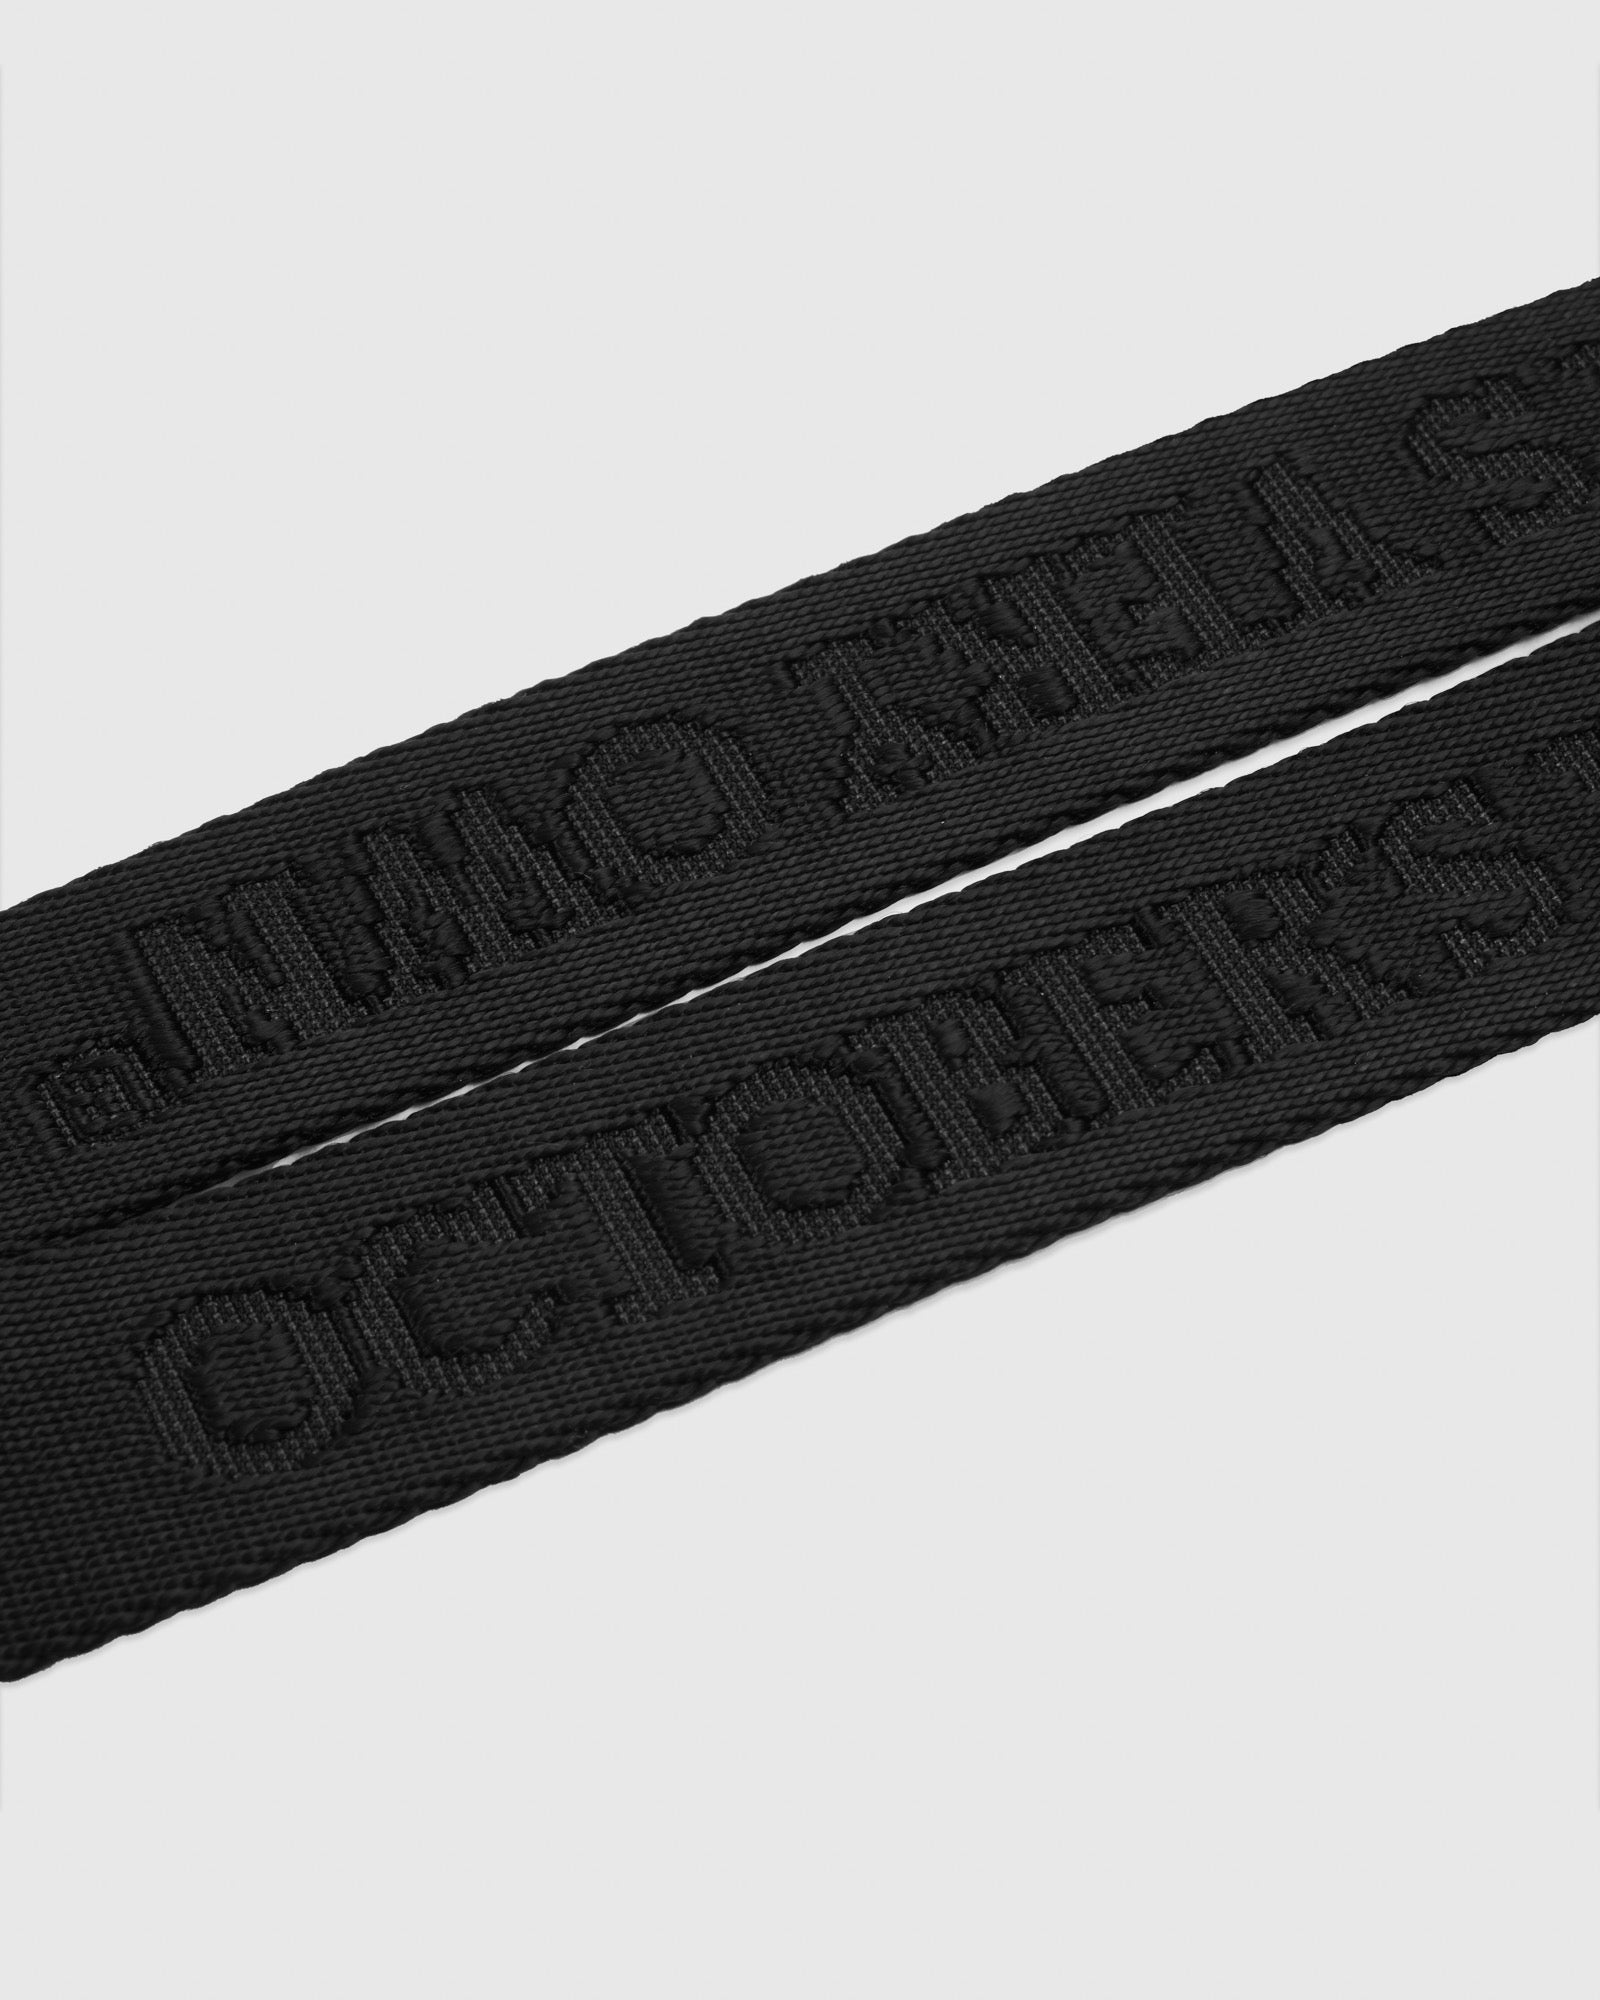 DEBOSSED NYLON LANYARD - BLACK